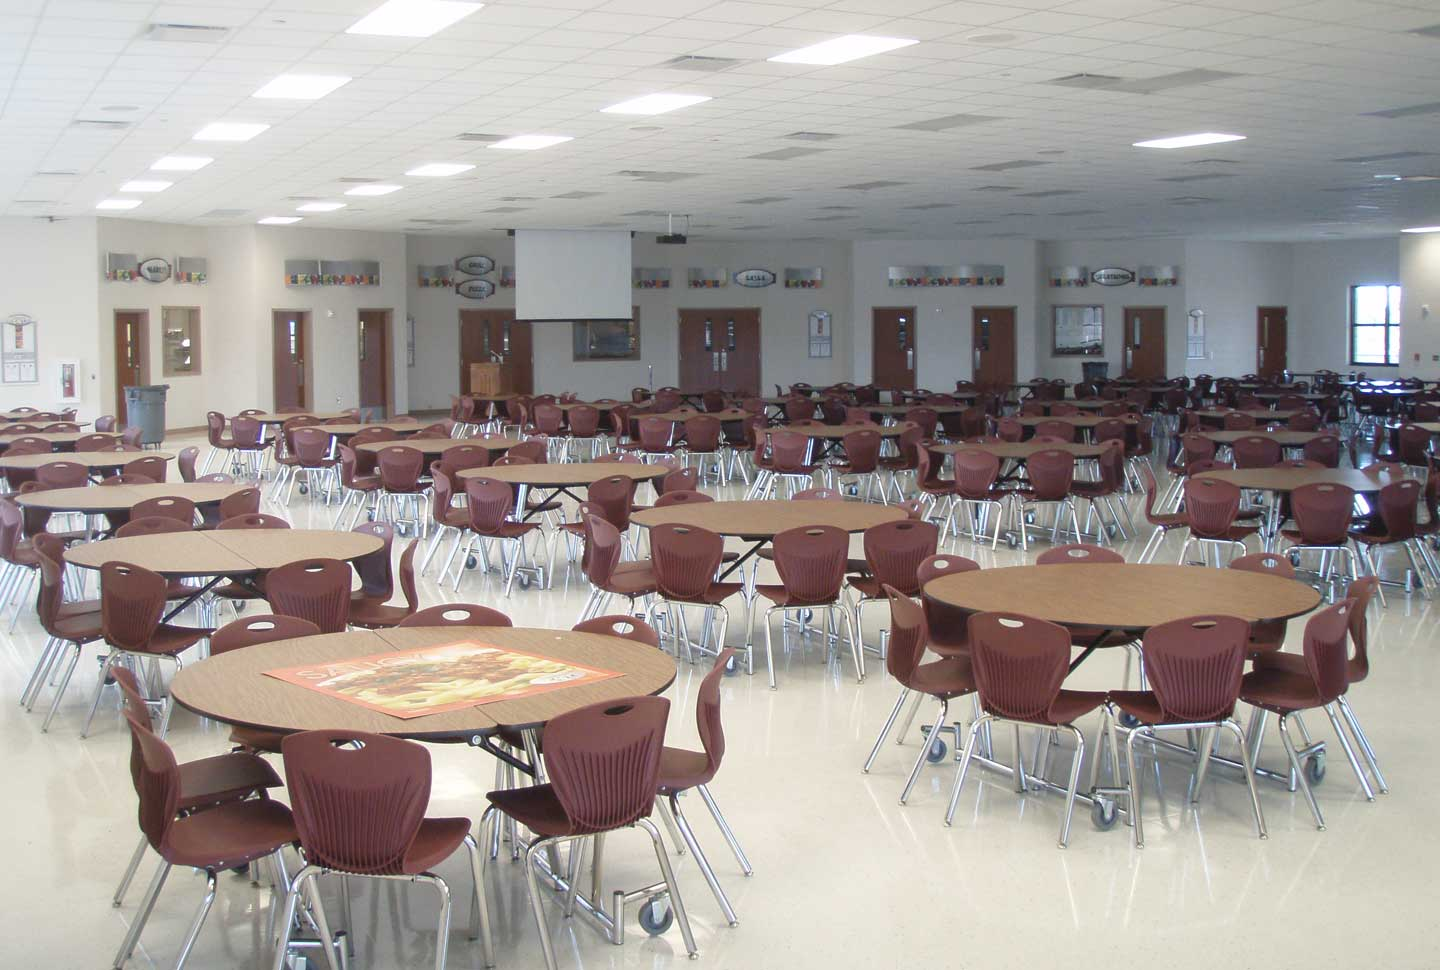 floresville-high-school-03